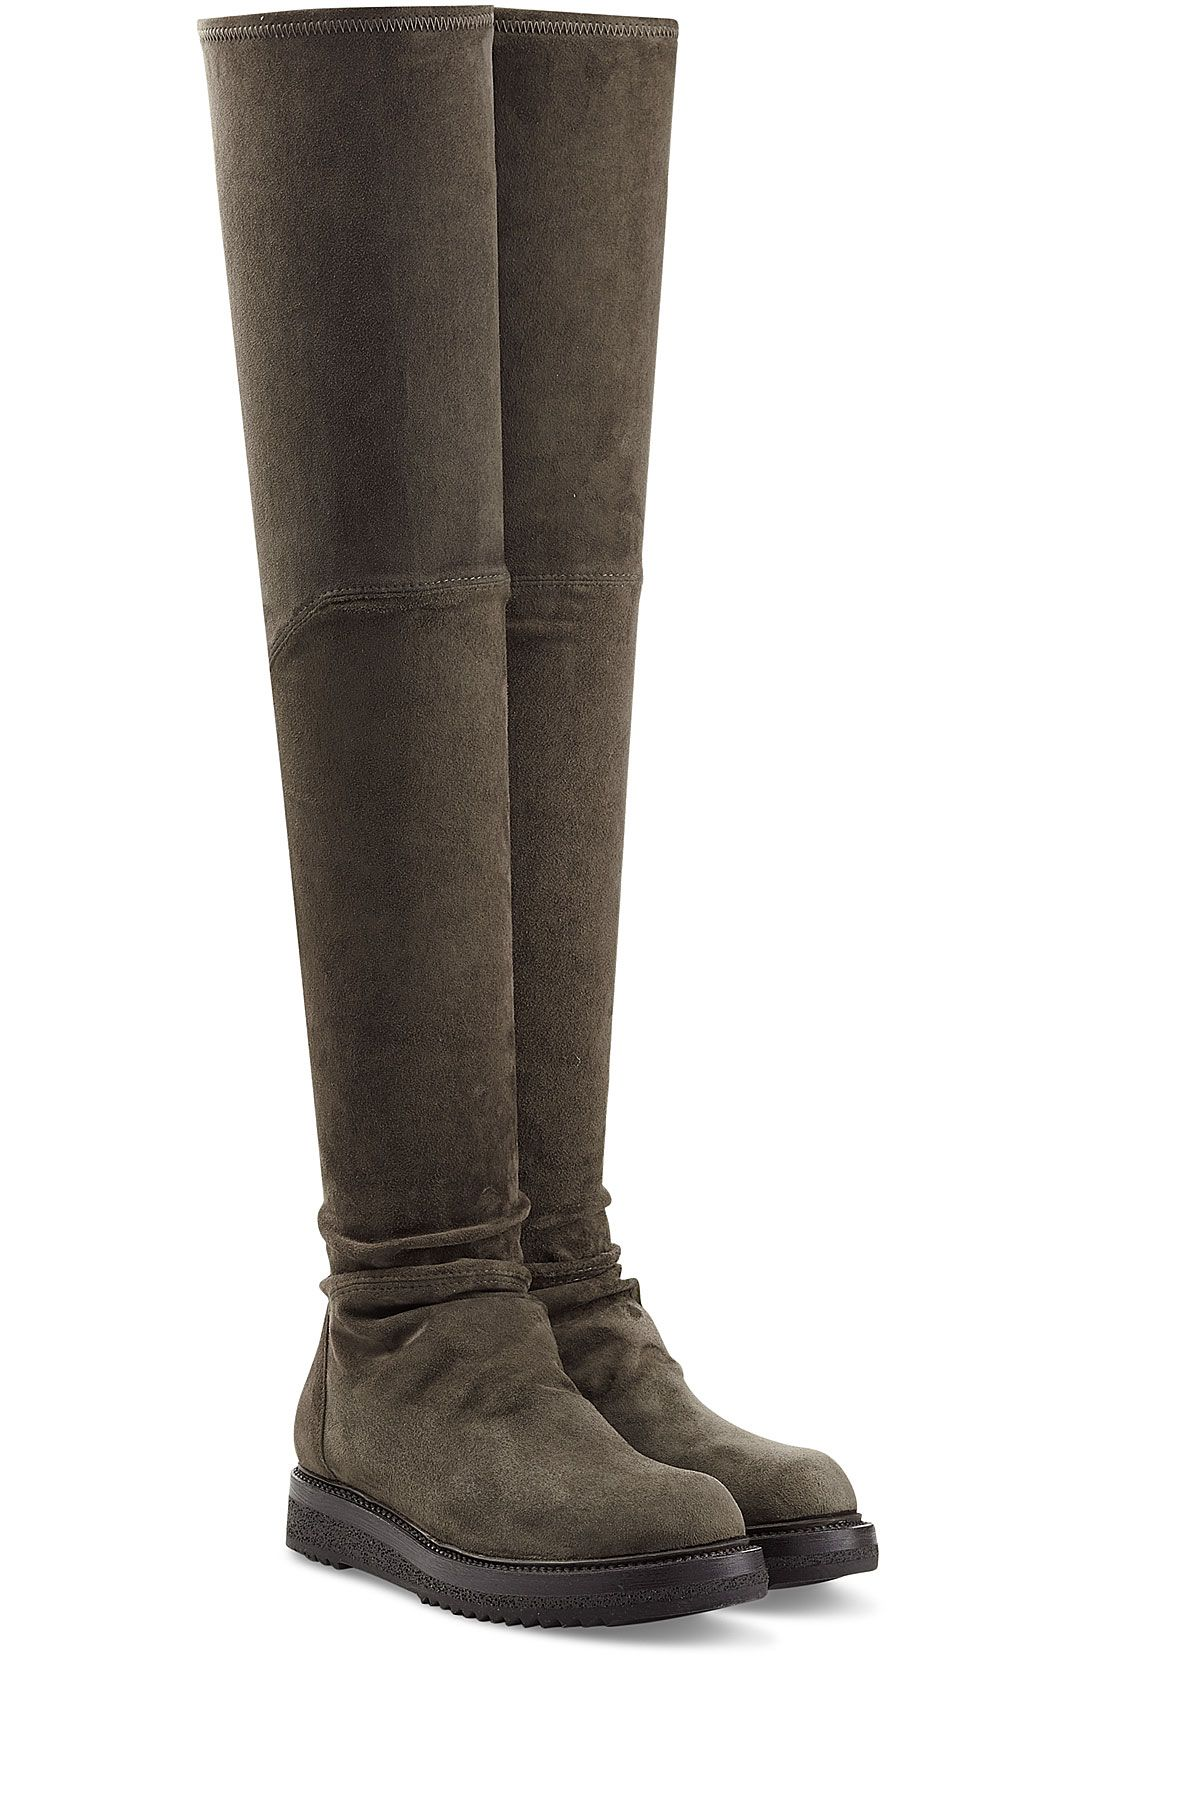 rick owens s green suede the knee boots gr 35